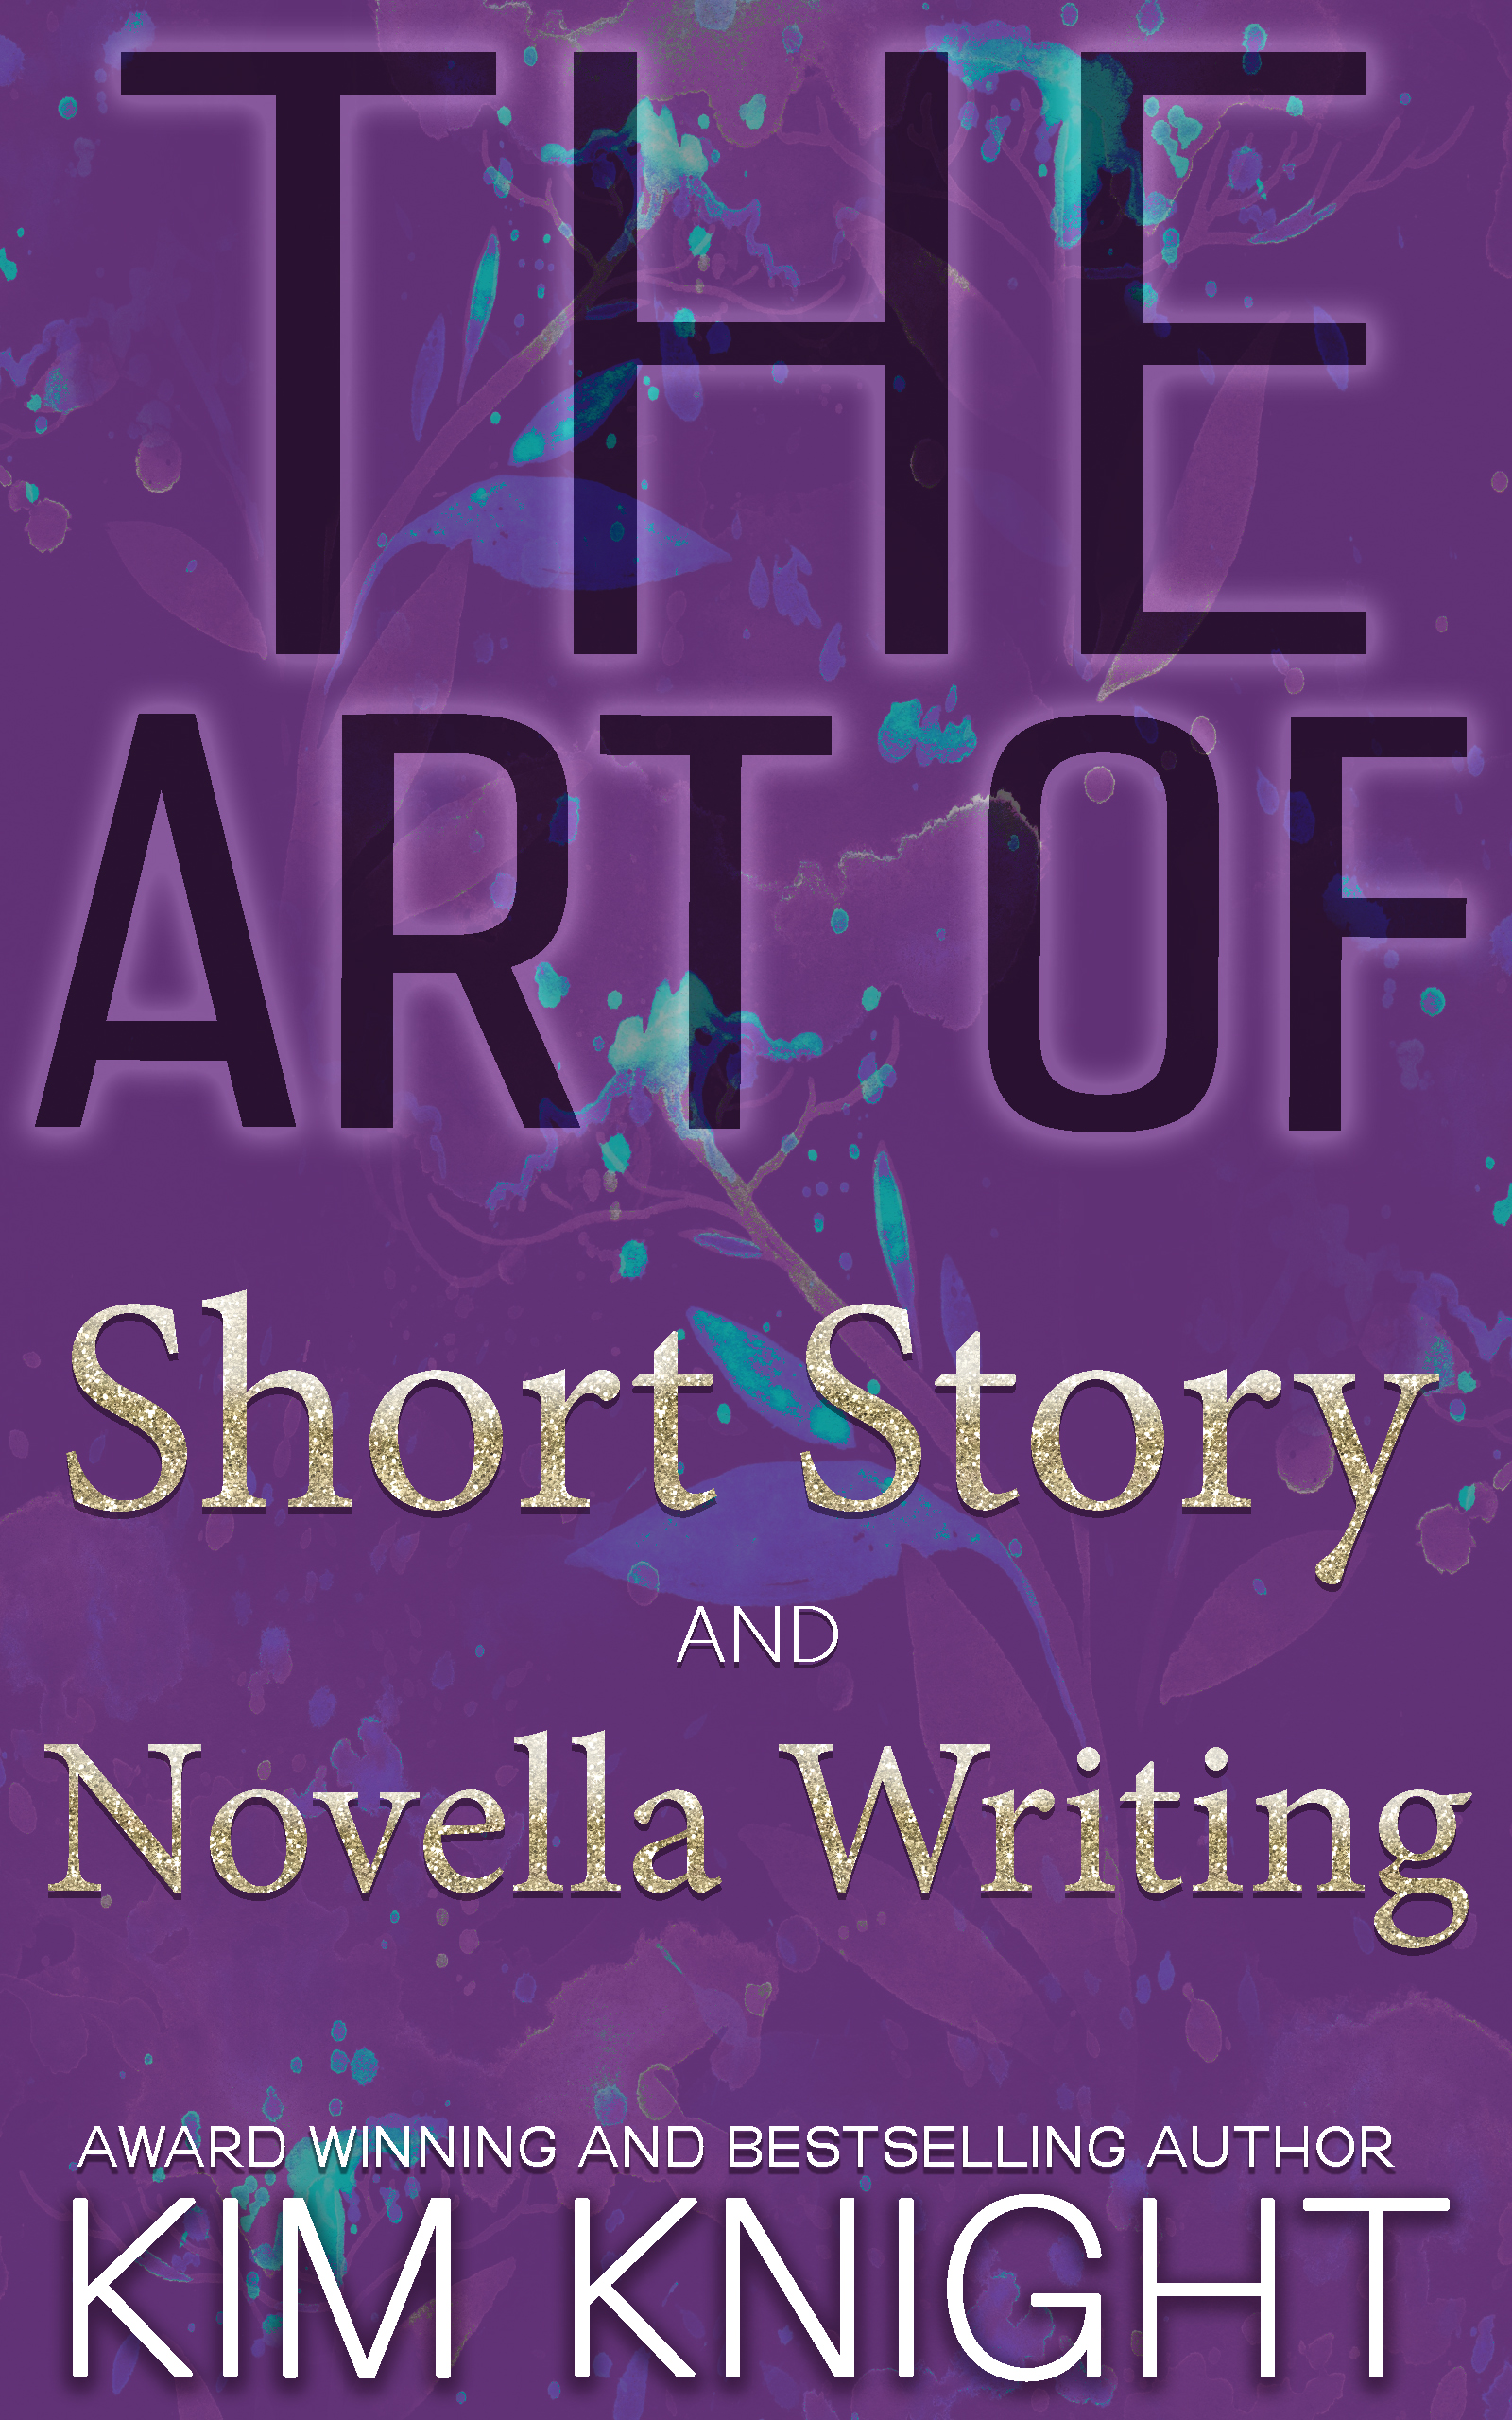 The art of short story and novella writing official 1